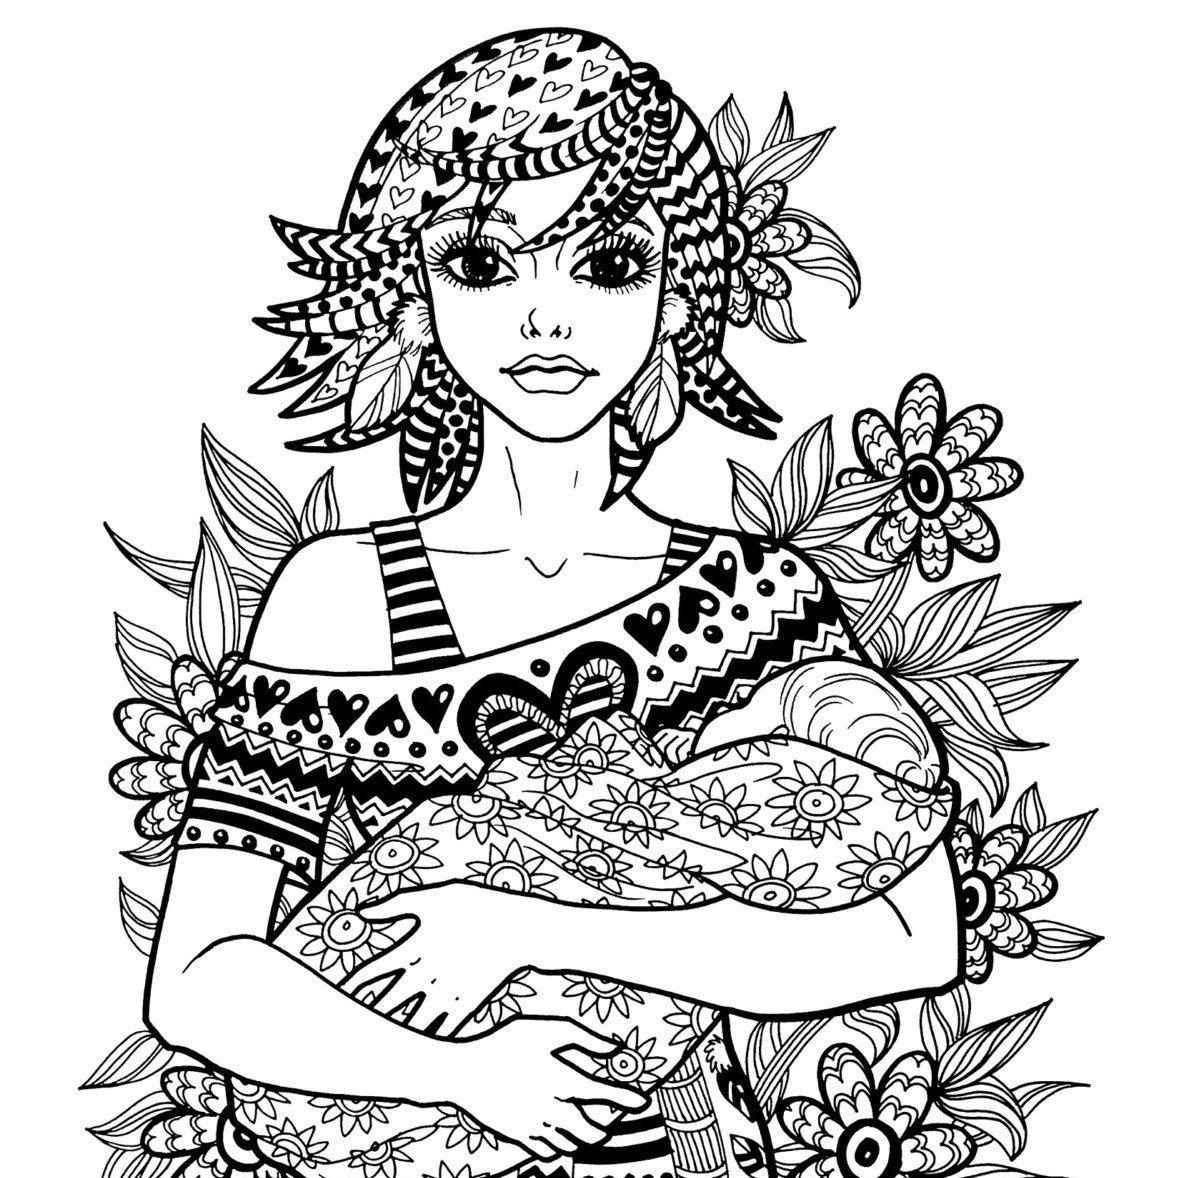 Https Img1 Etsystatic Com 075 1 6066715 Il Fullxfull 820770957 Rg7u Jpg Coloring Pages Heart Coloring Pages Baby Coloring Pages